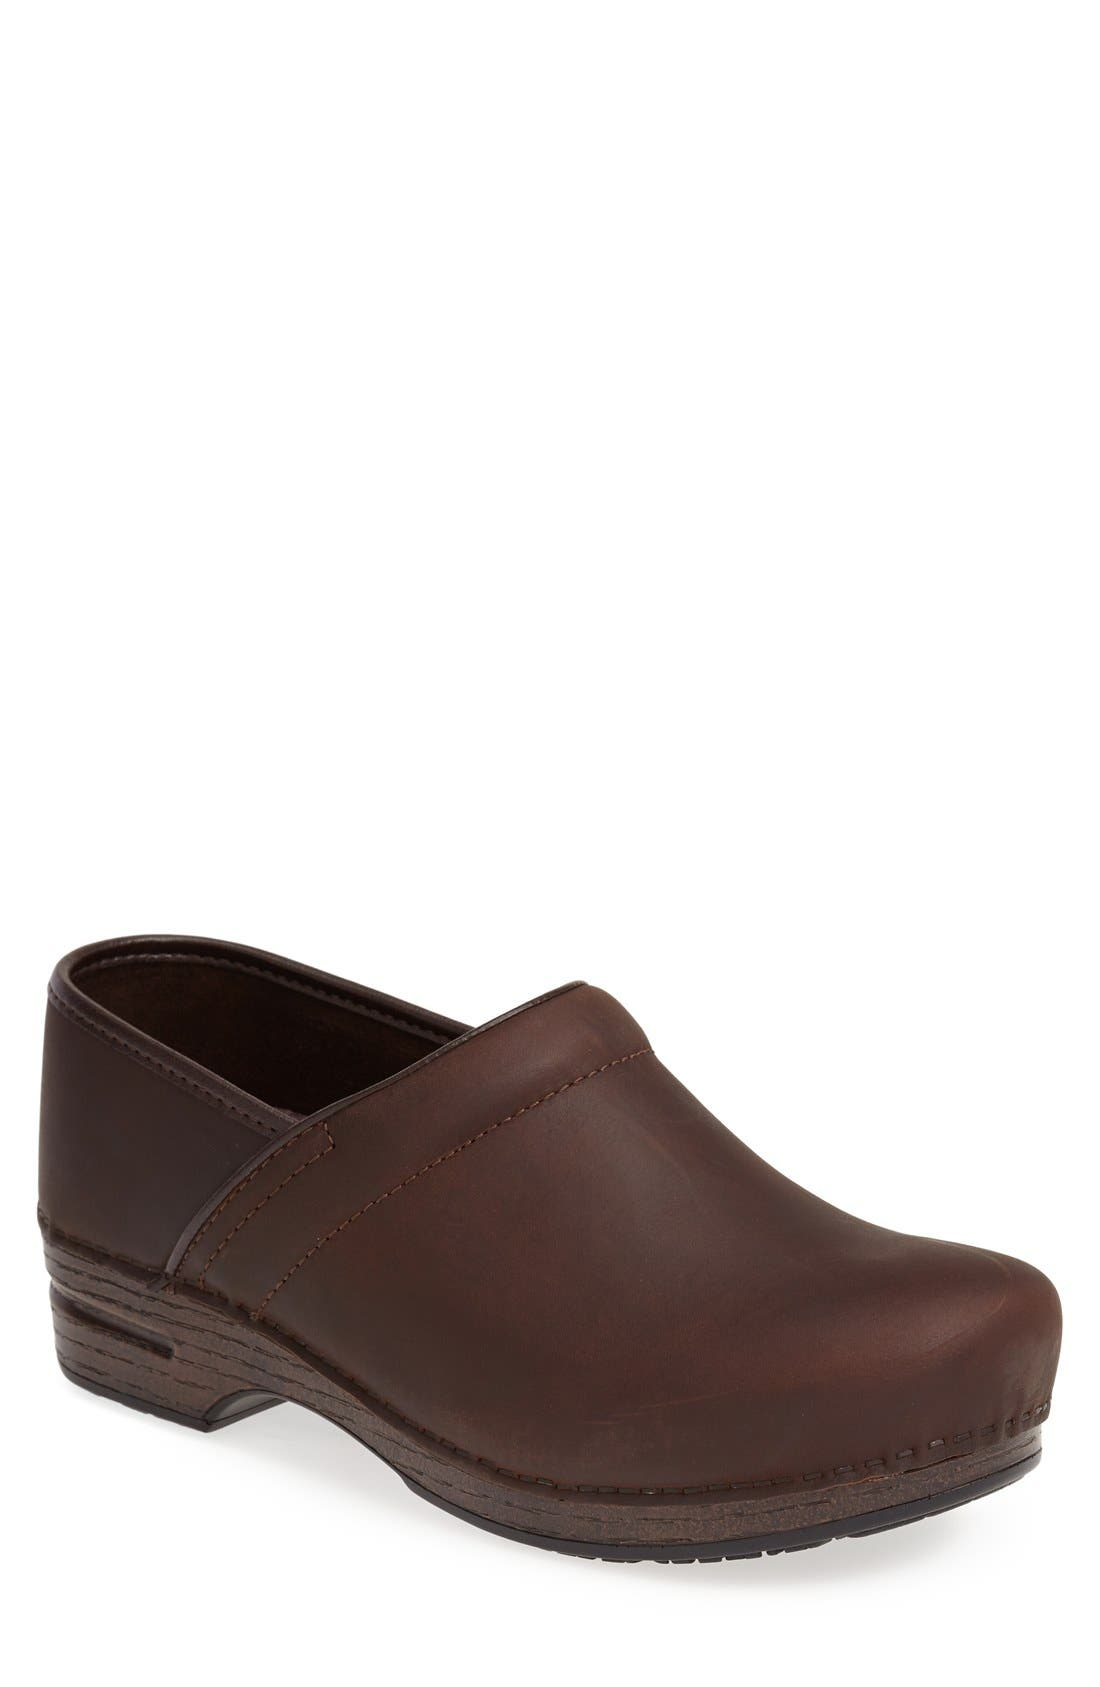 'Pro XP' Slip-On,                         Main,                         color, Brown Oiled